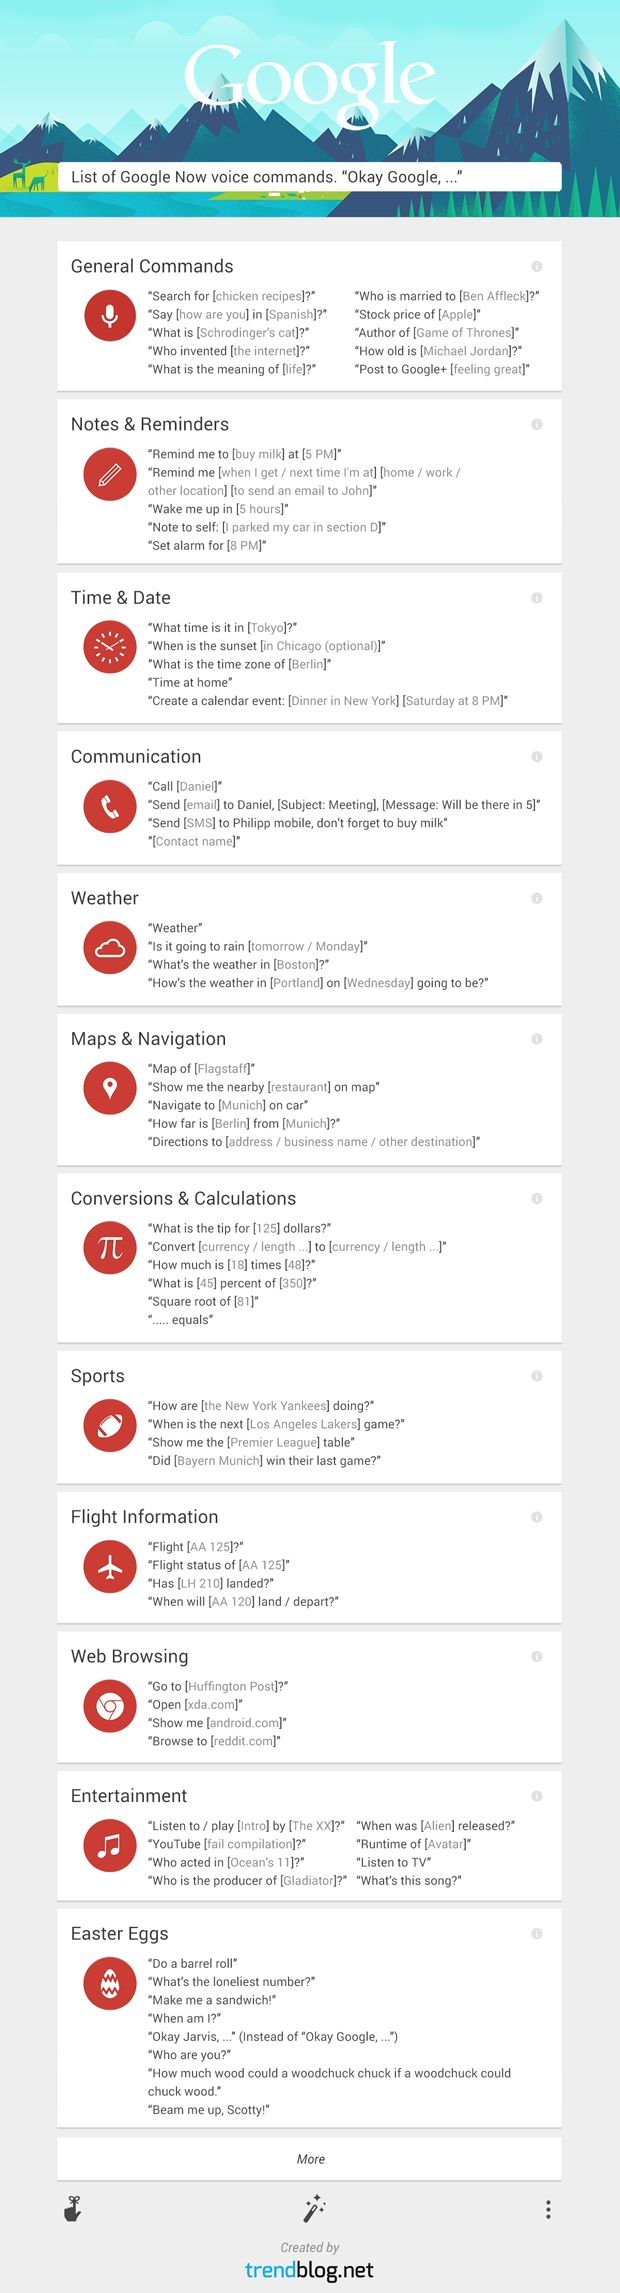 Over 60 Google Now Commands | Infographic